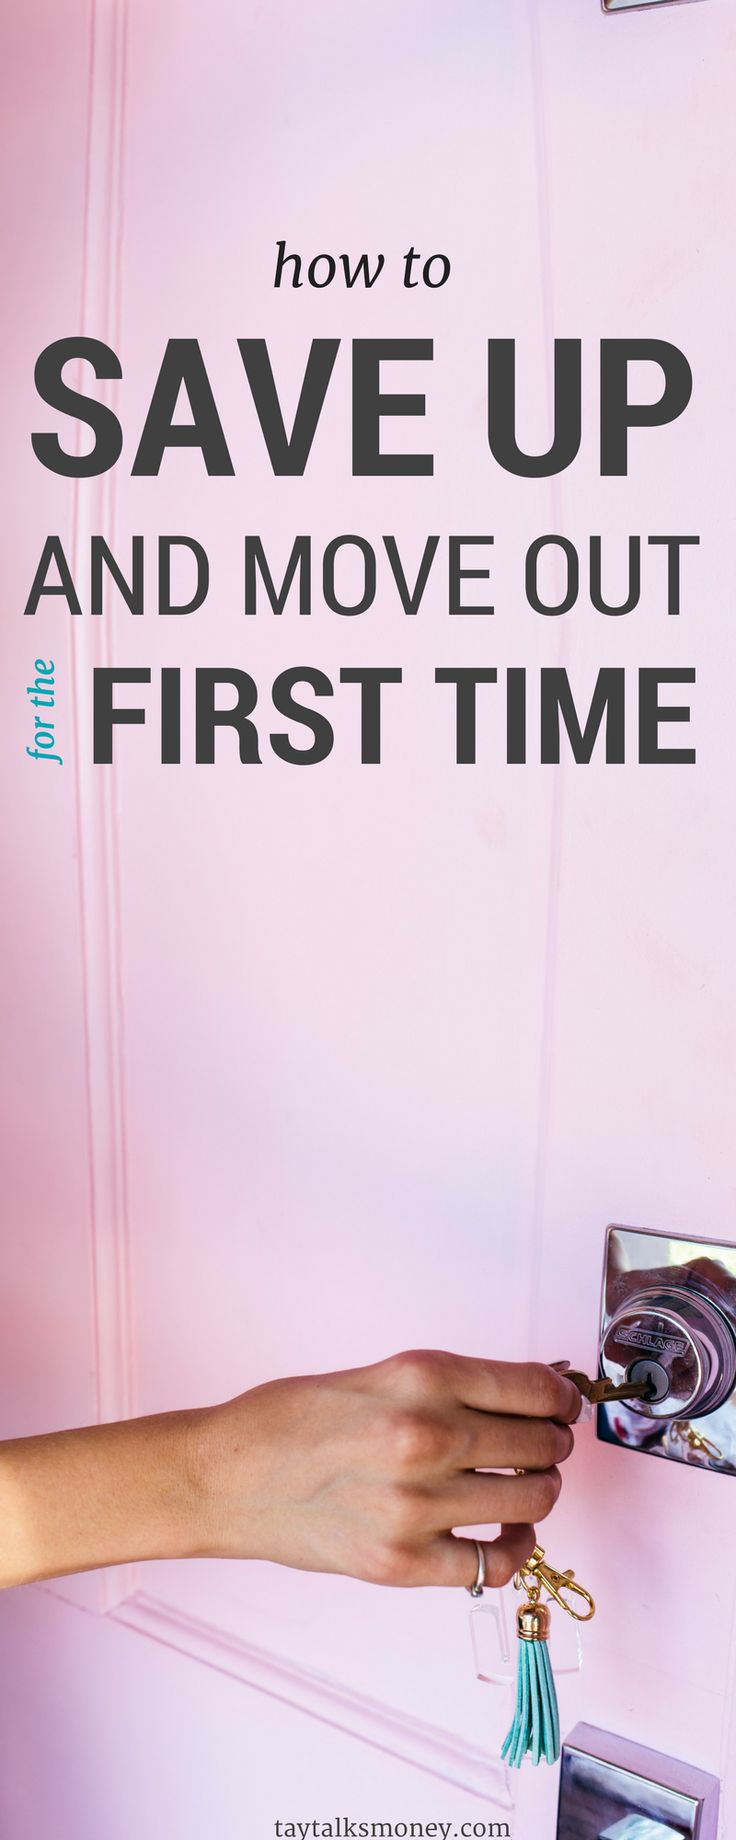 So cool!!! This post is all about how to move out of your hometown and parent's house. Love this!     Save money tips | moving | move out of parent's house | moving tips